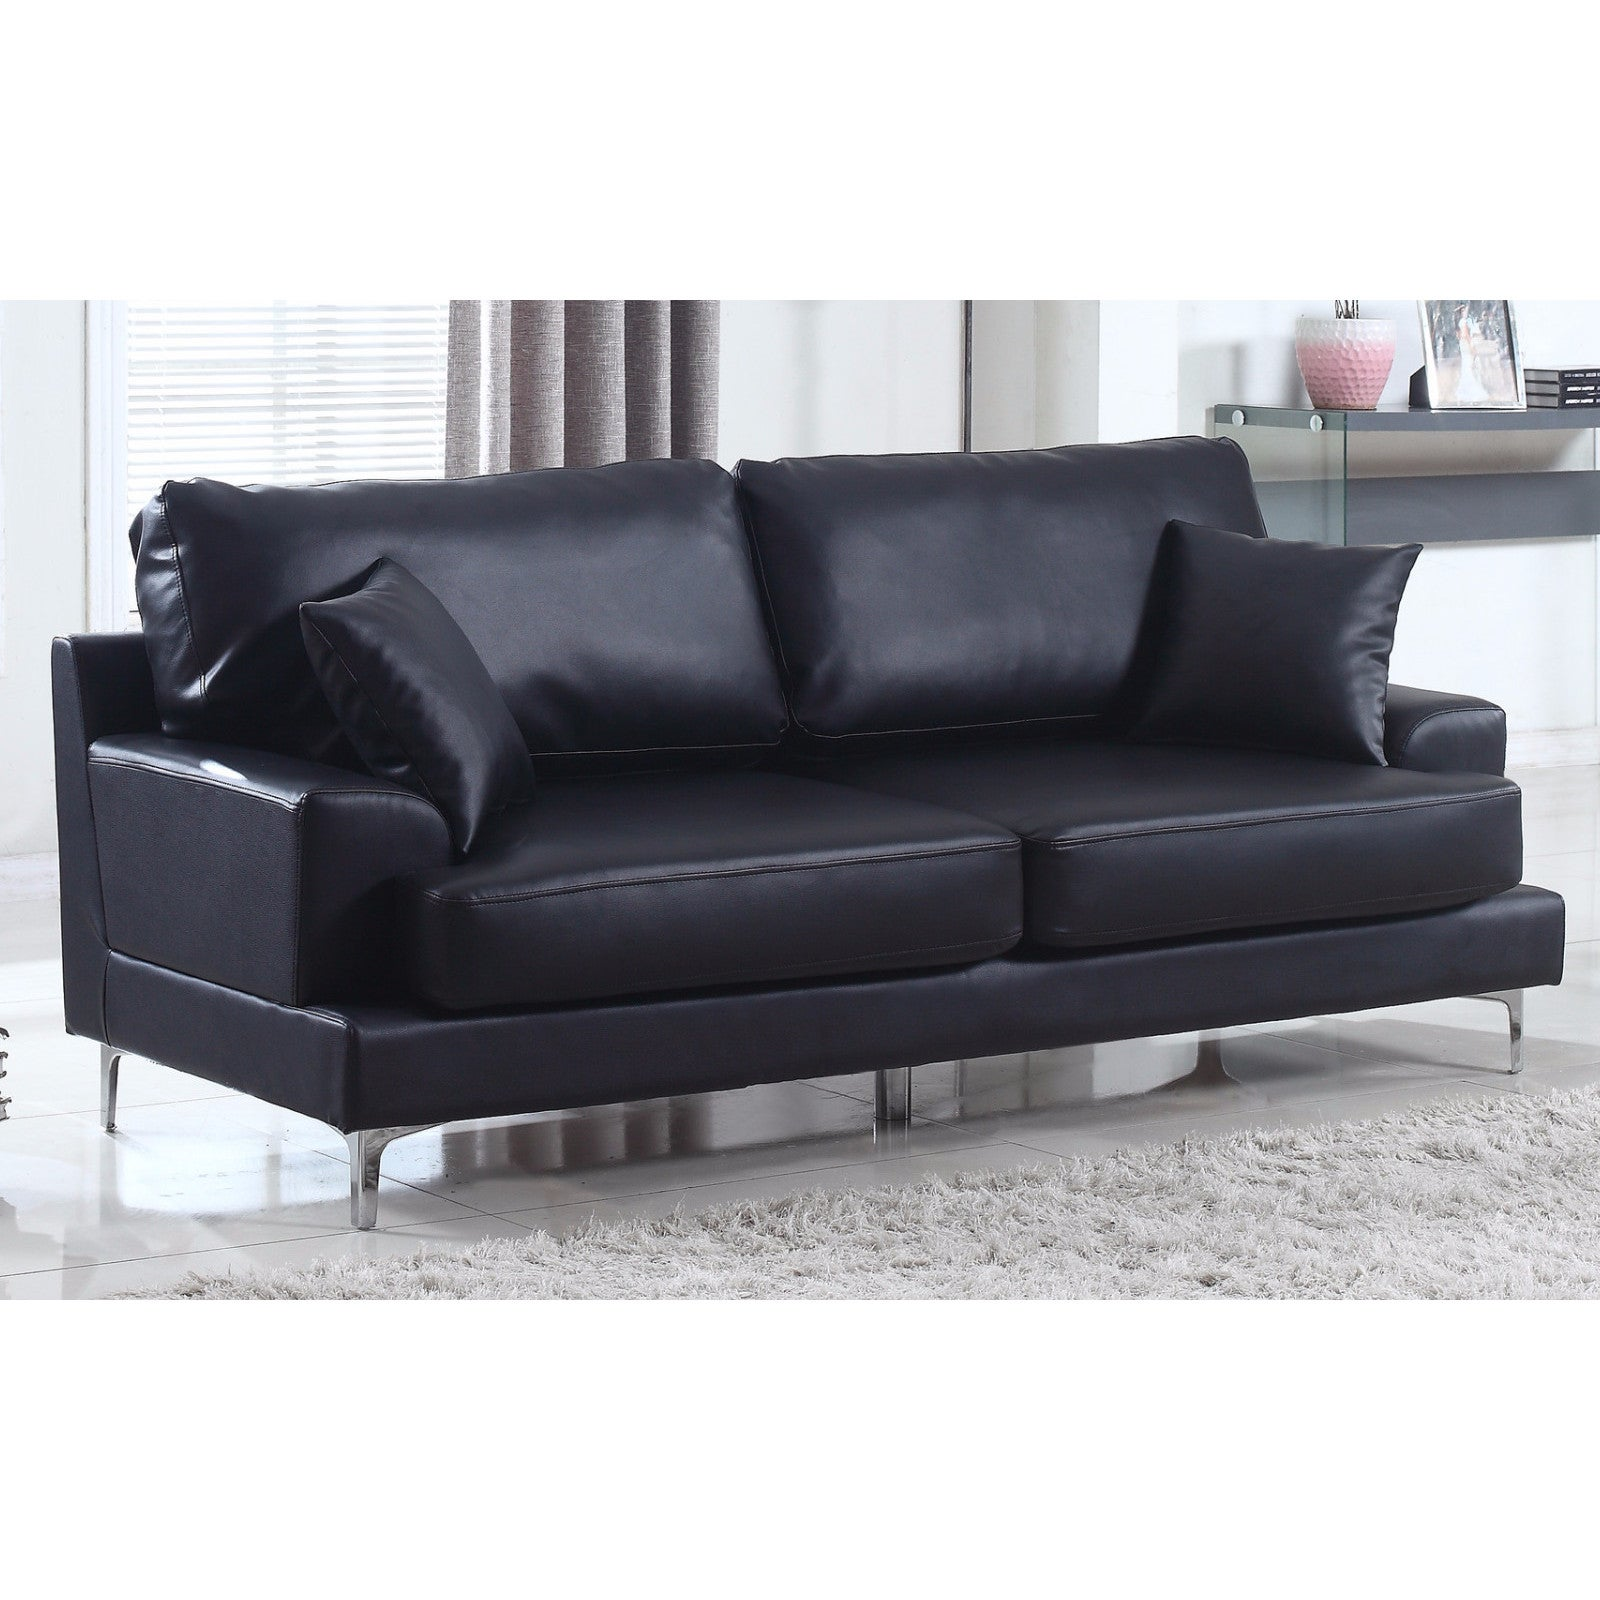 Ultra Modern Plush Bonded Leather Living Room Sofa With Chrome Leg Detail